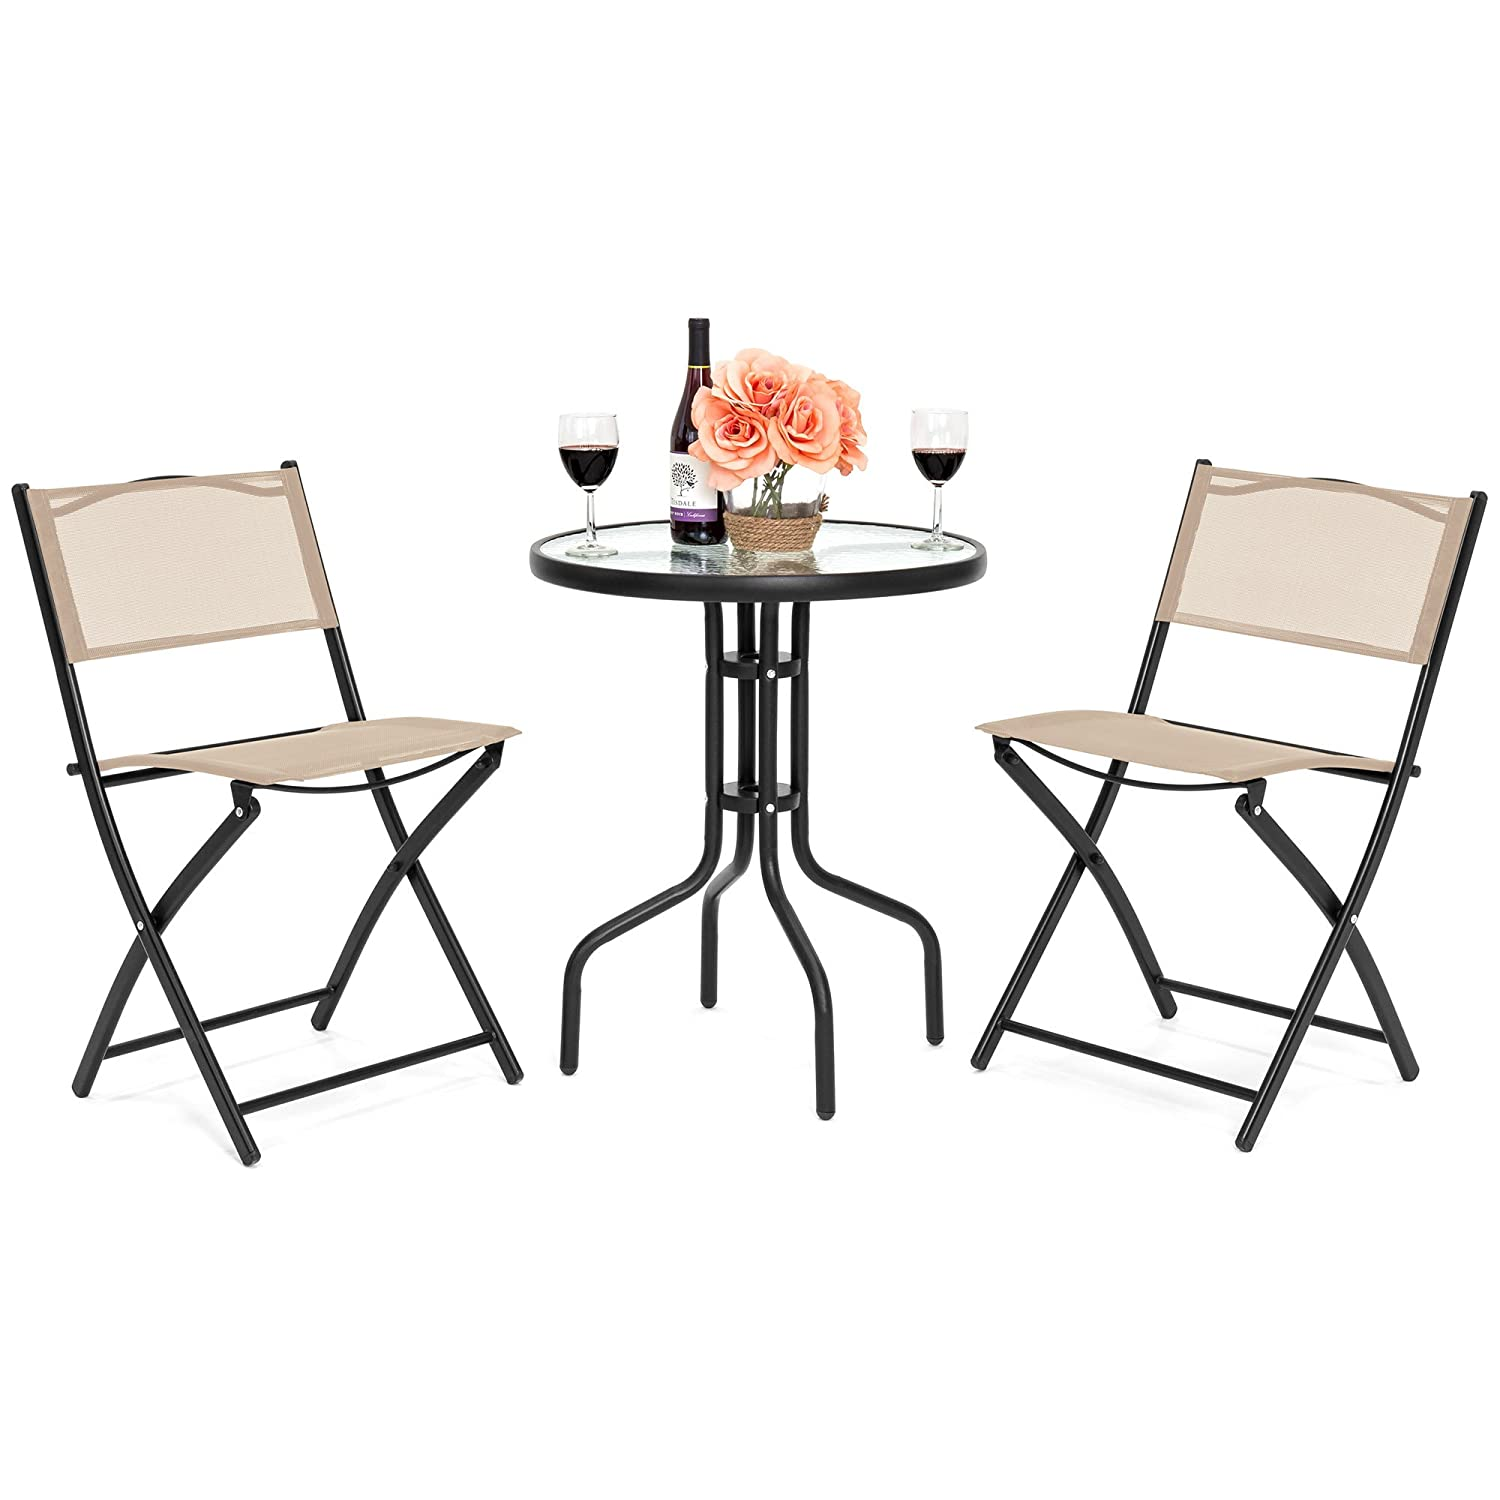 Best Choice Products 3-Piece Patio Bistro Dining Furniture Set w Round Textured Glass Table Top, 2 Foldable Chairs – Tan